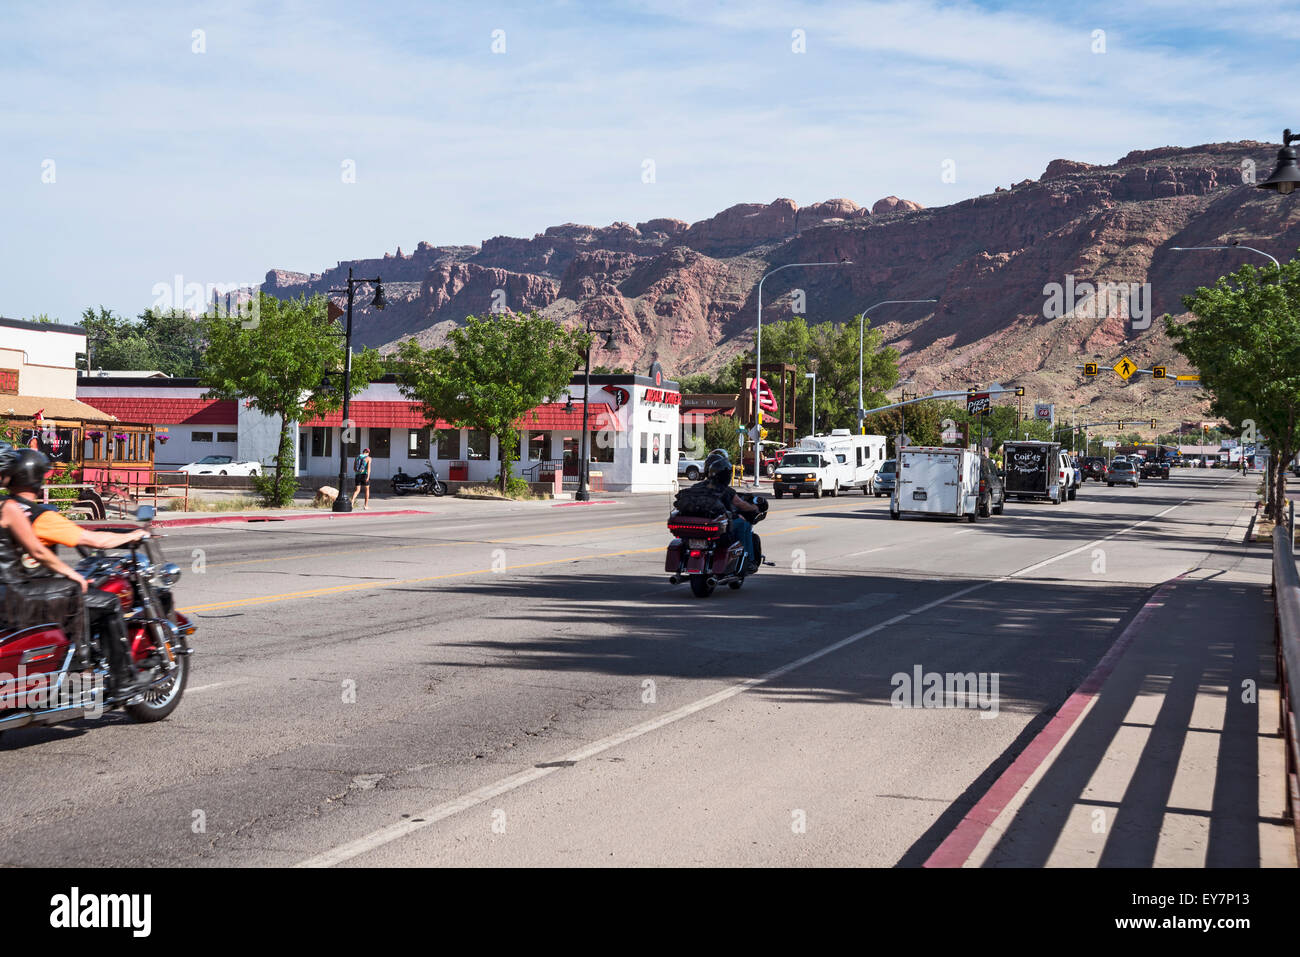 Street of  city Moab, Utah,  USA, North America, UnitedUSA, North America, United States - Stock Image